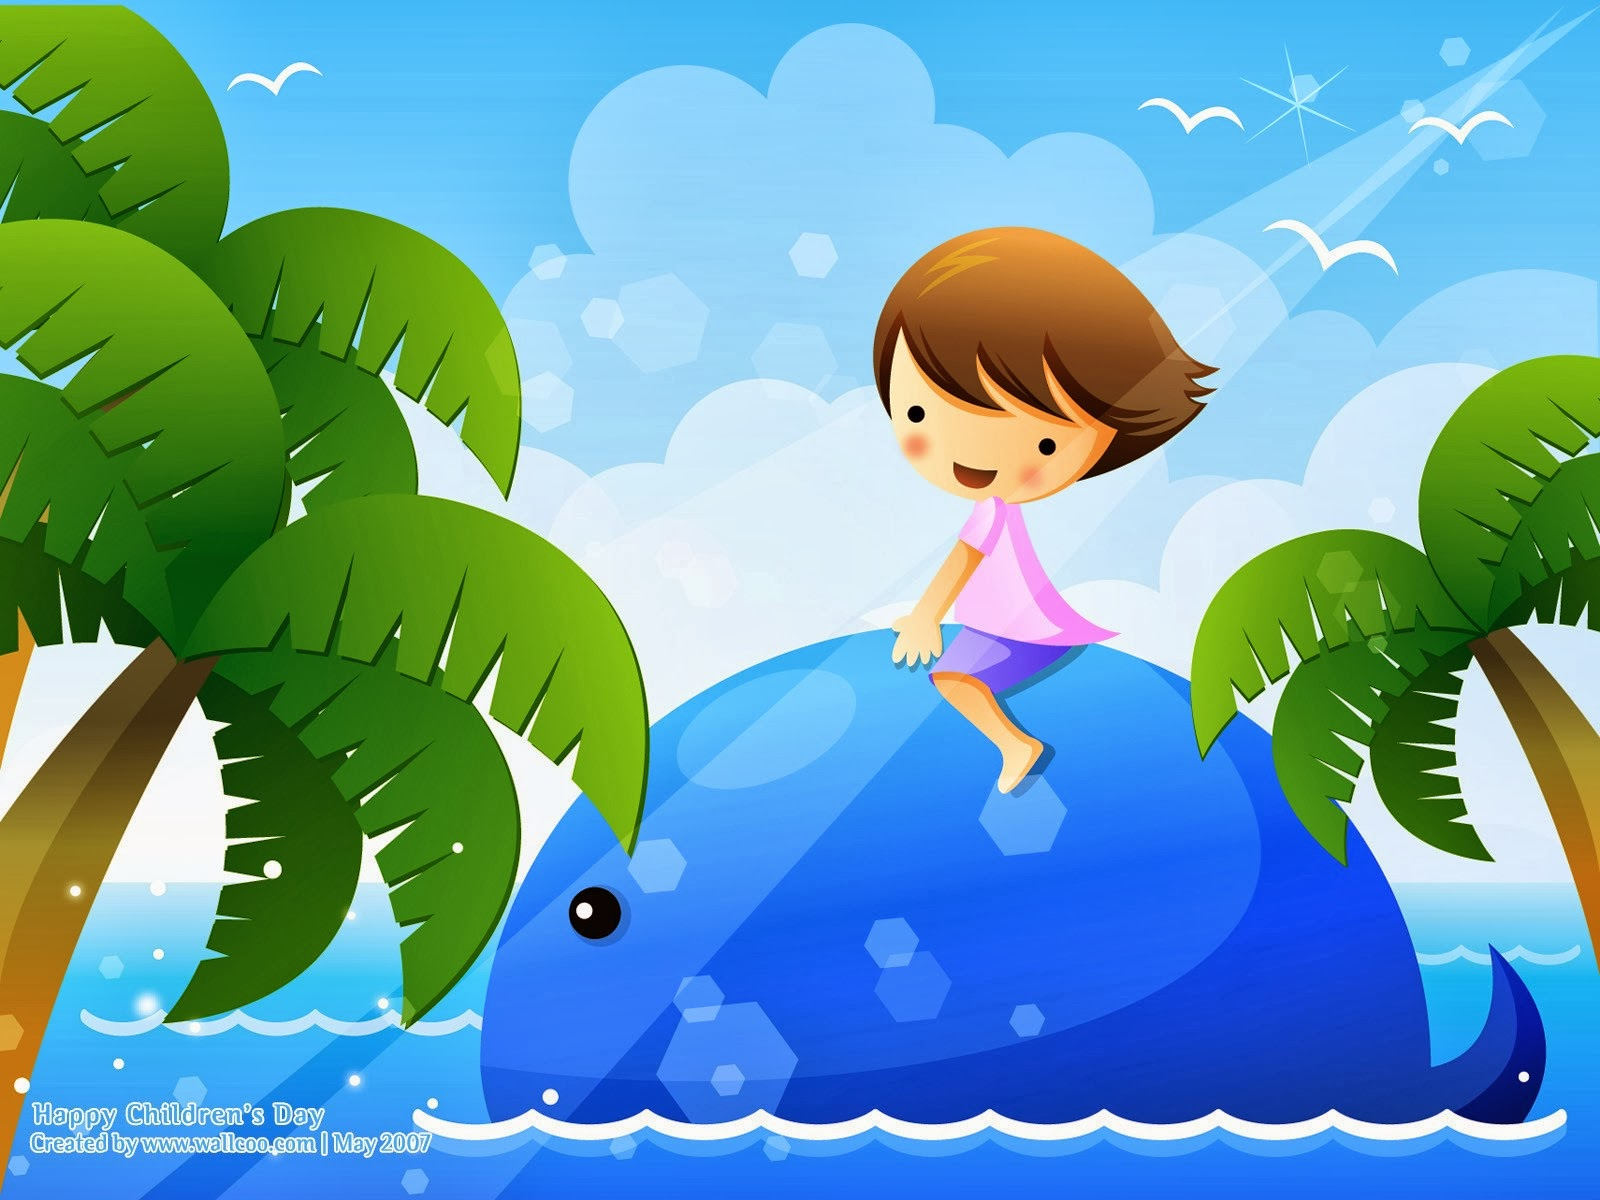 All new wallpaper Cute kids wallpaper children game 1600x1200